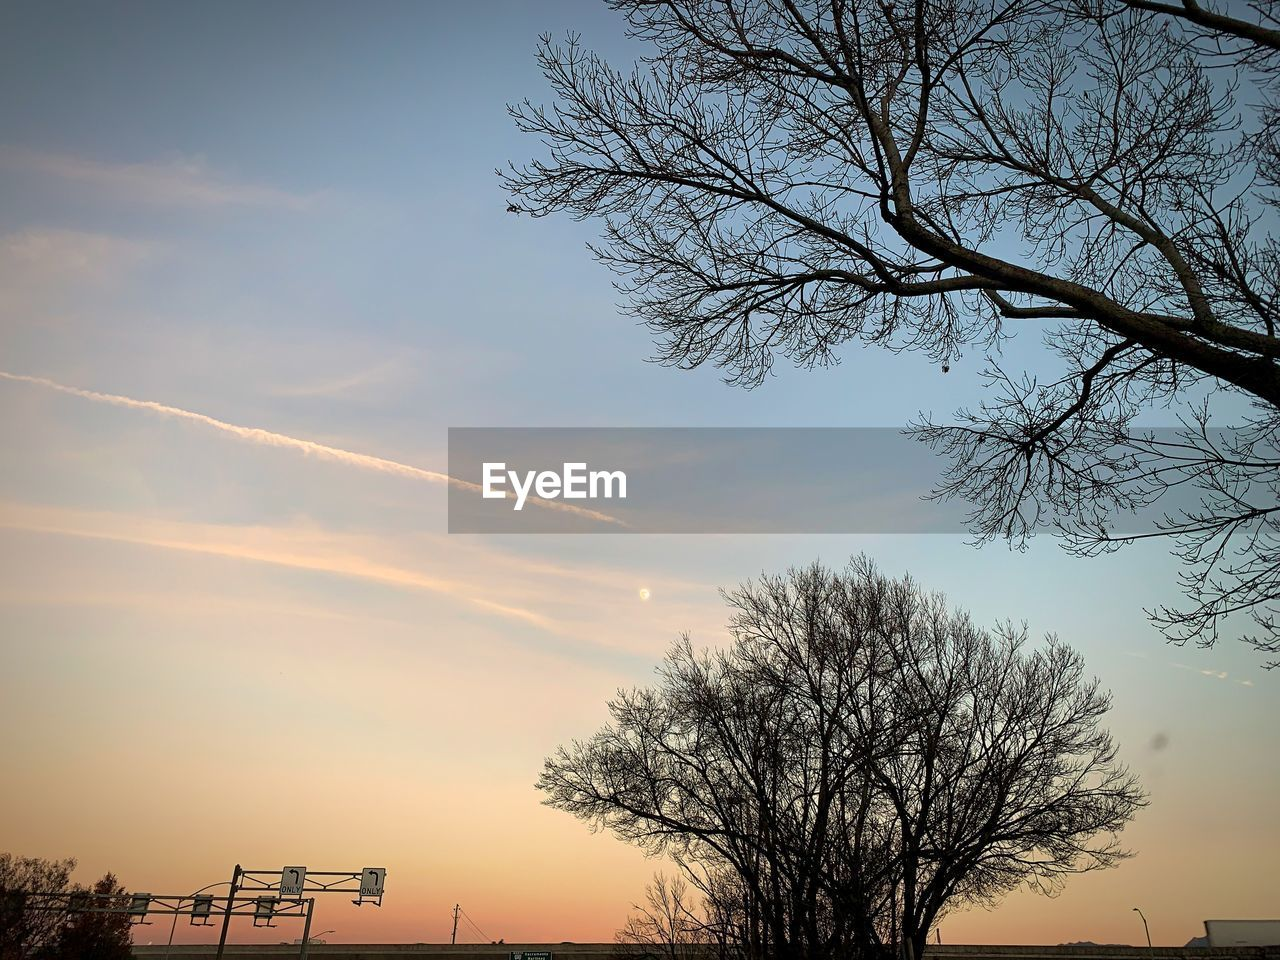 sky, tree, plant, sunset, bare tree, silhouette, branch, cloud - sky, nature, beauty in nature, scenics - nature, no people, tranquility, low angle view, outdoors, tranquil scene, architecture, orange color, built structure, non-urban scene